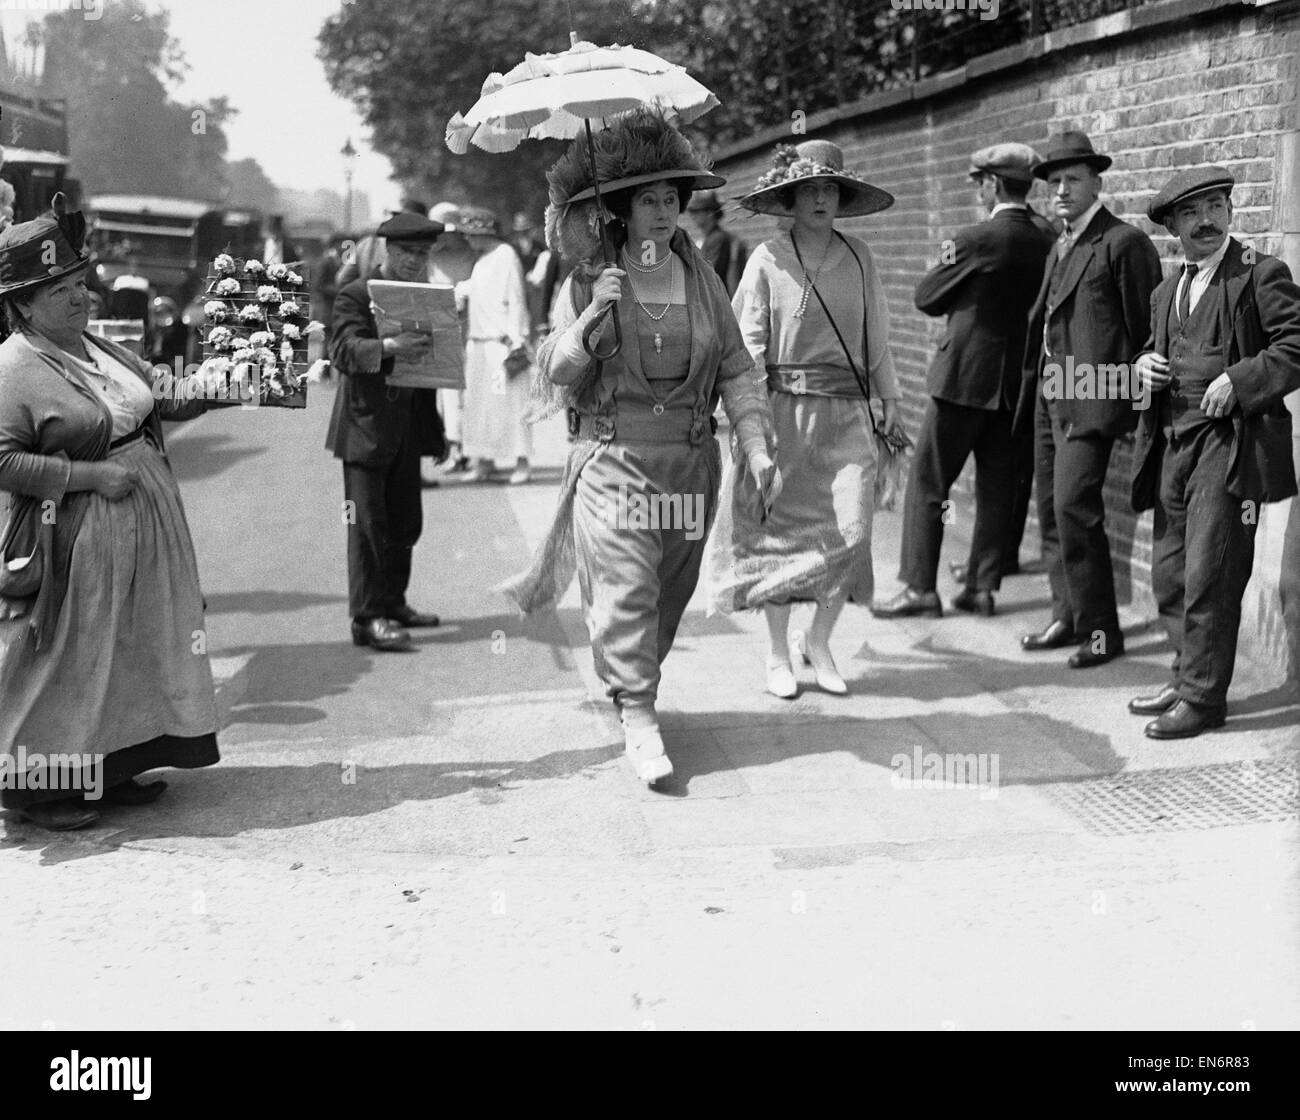 Mrs Baldwin July 1923 Wife of Prime Minister Stanley Baldwin Pictured arriving at Lords Cricket Ground Cricket match - Stock Image